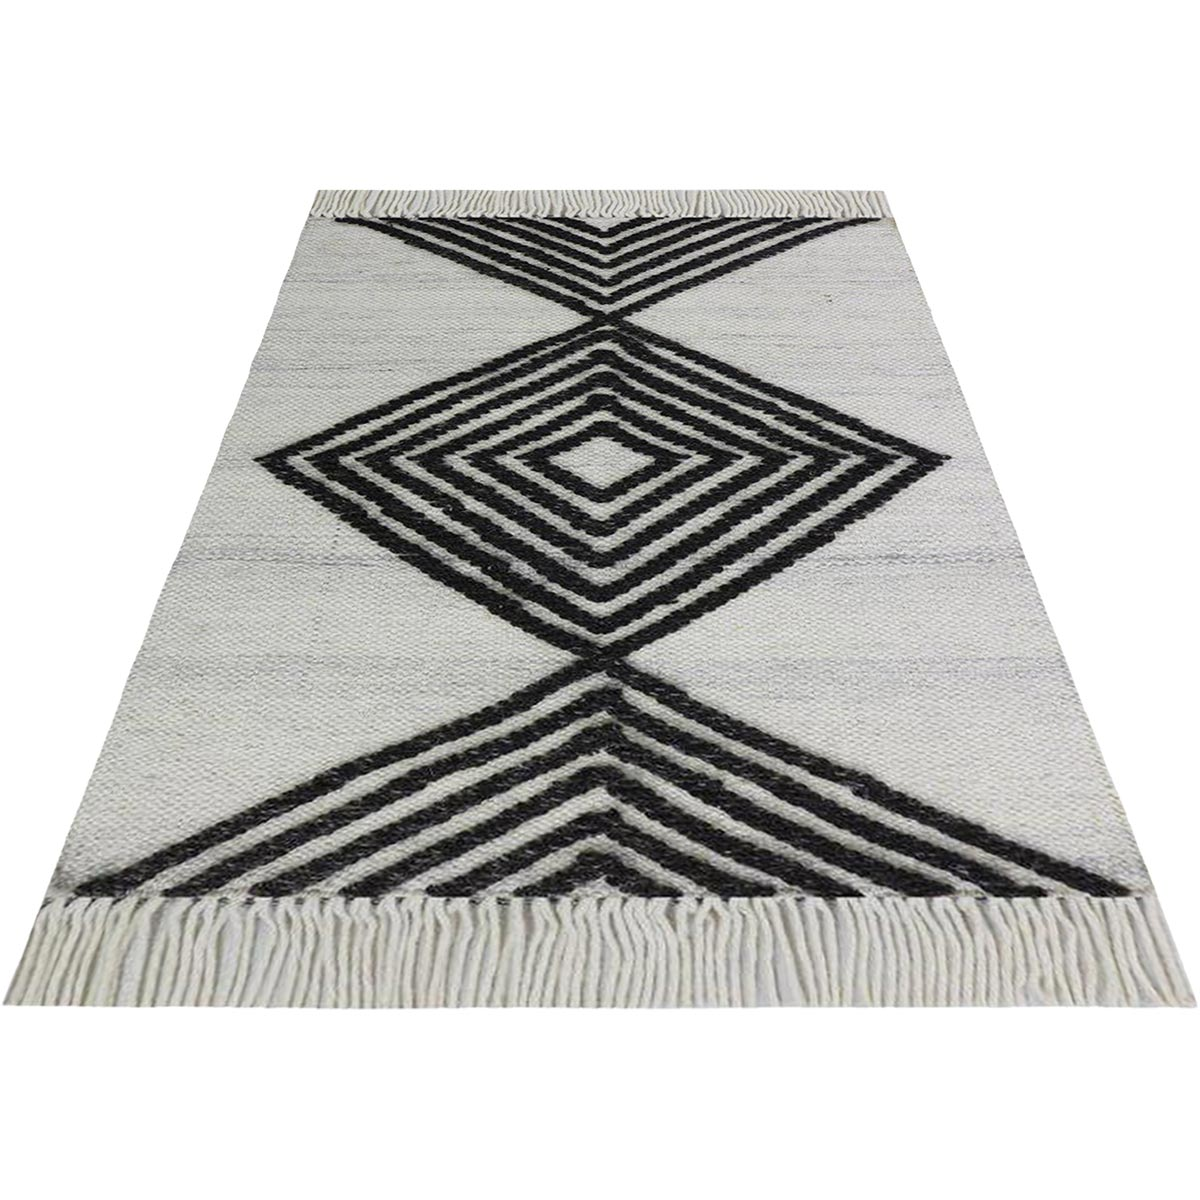 Tangier Rug 16 White/Dark Grey 2